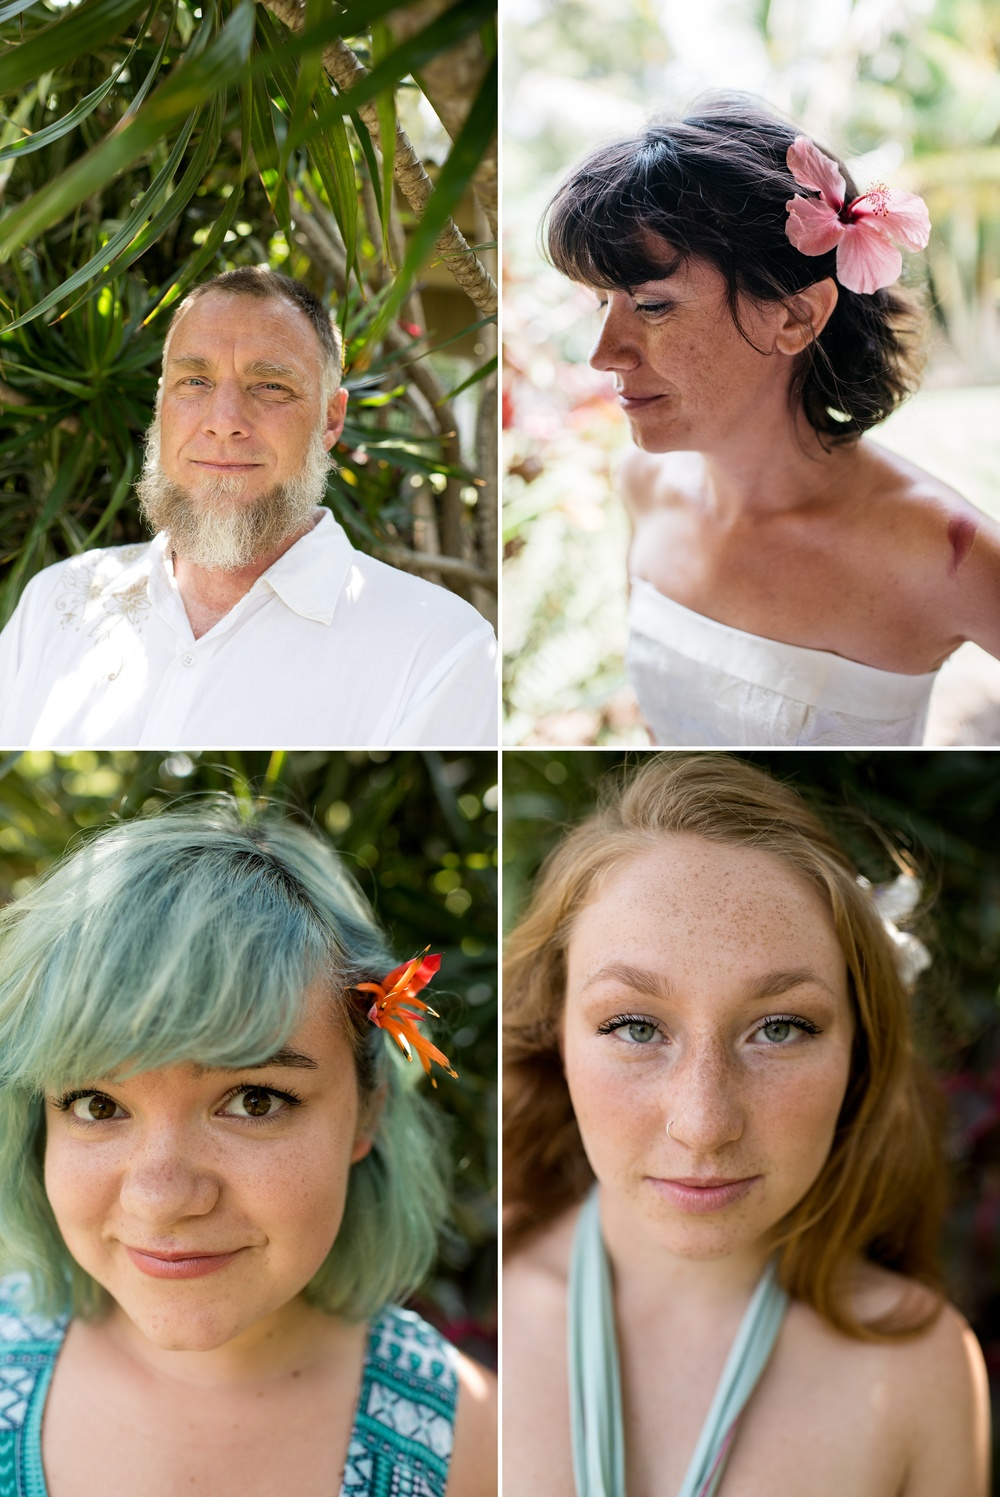 Head shots of Dan, Maarit, Gwen, and Luna in Naalehu, Hawaii. Portrait photography by Sonja Salzburg of Sonja K Photography.